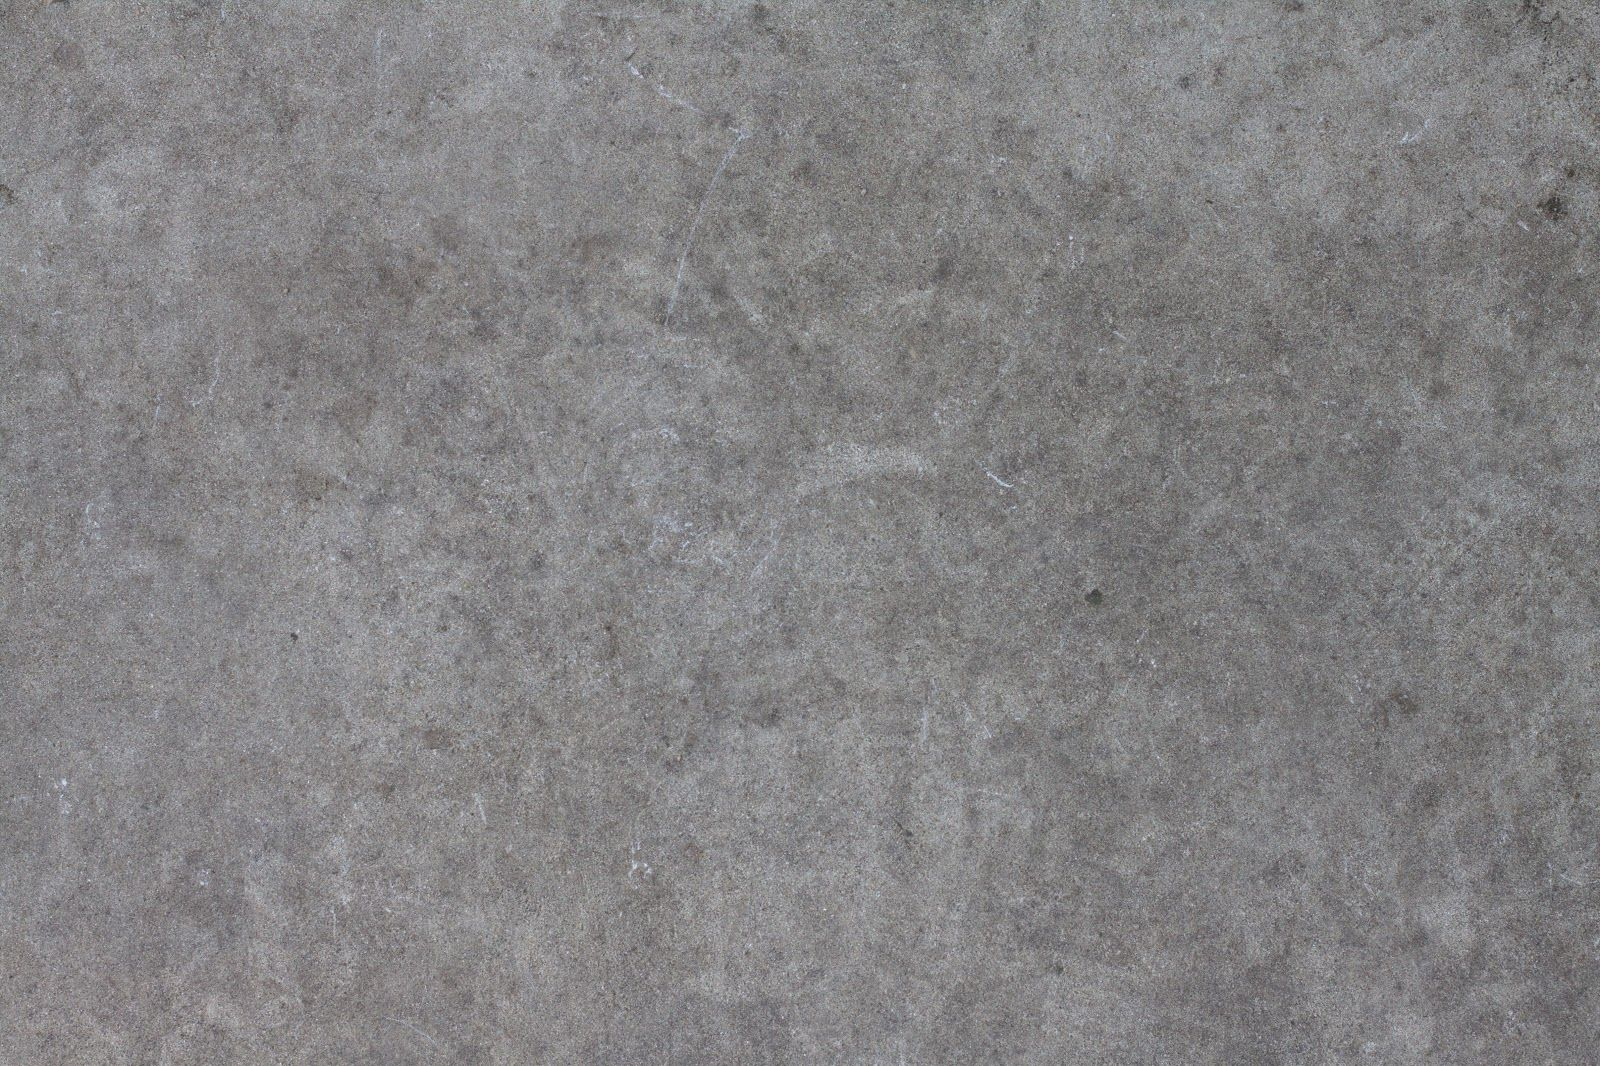 High Resolution Seamless Textures Concrete 4 Wall